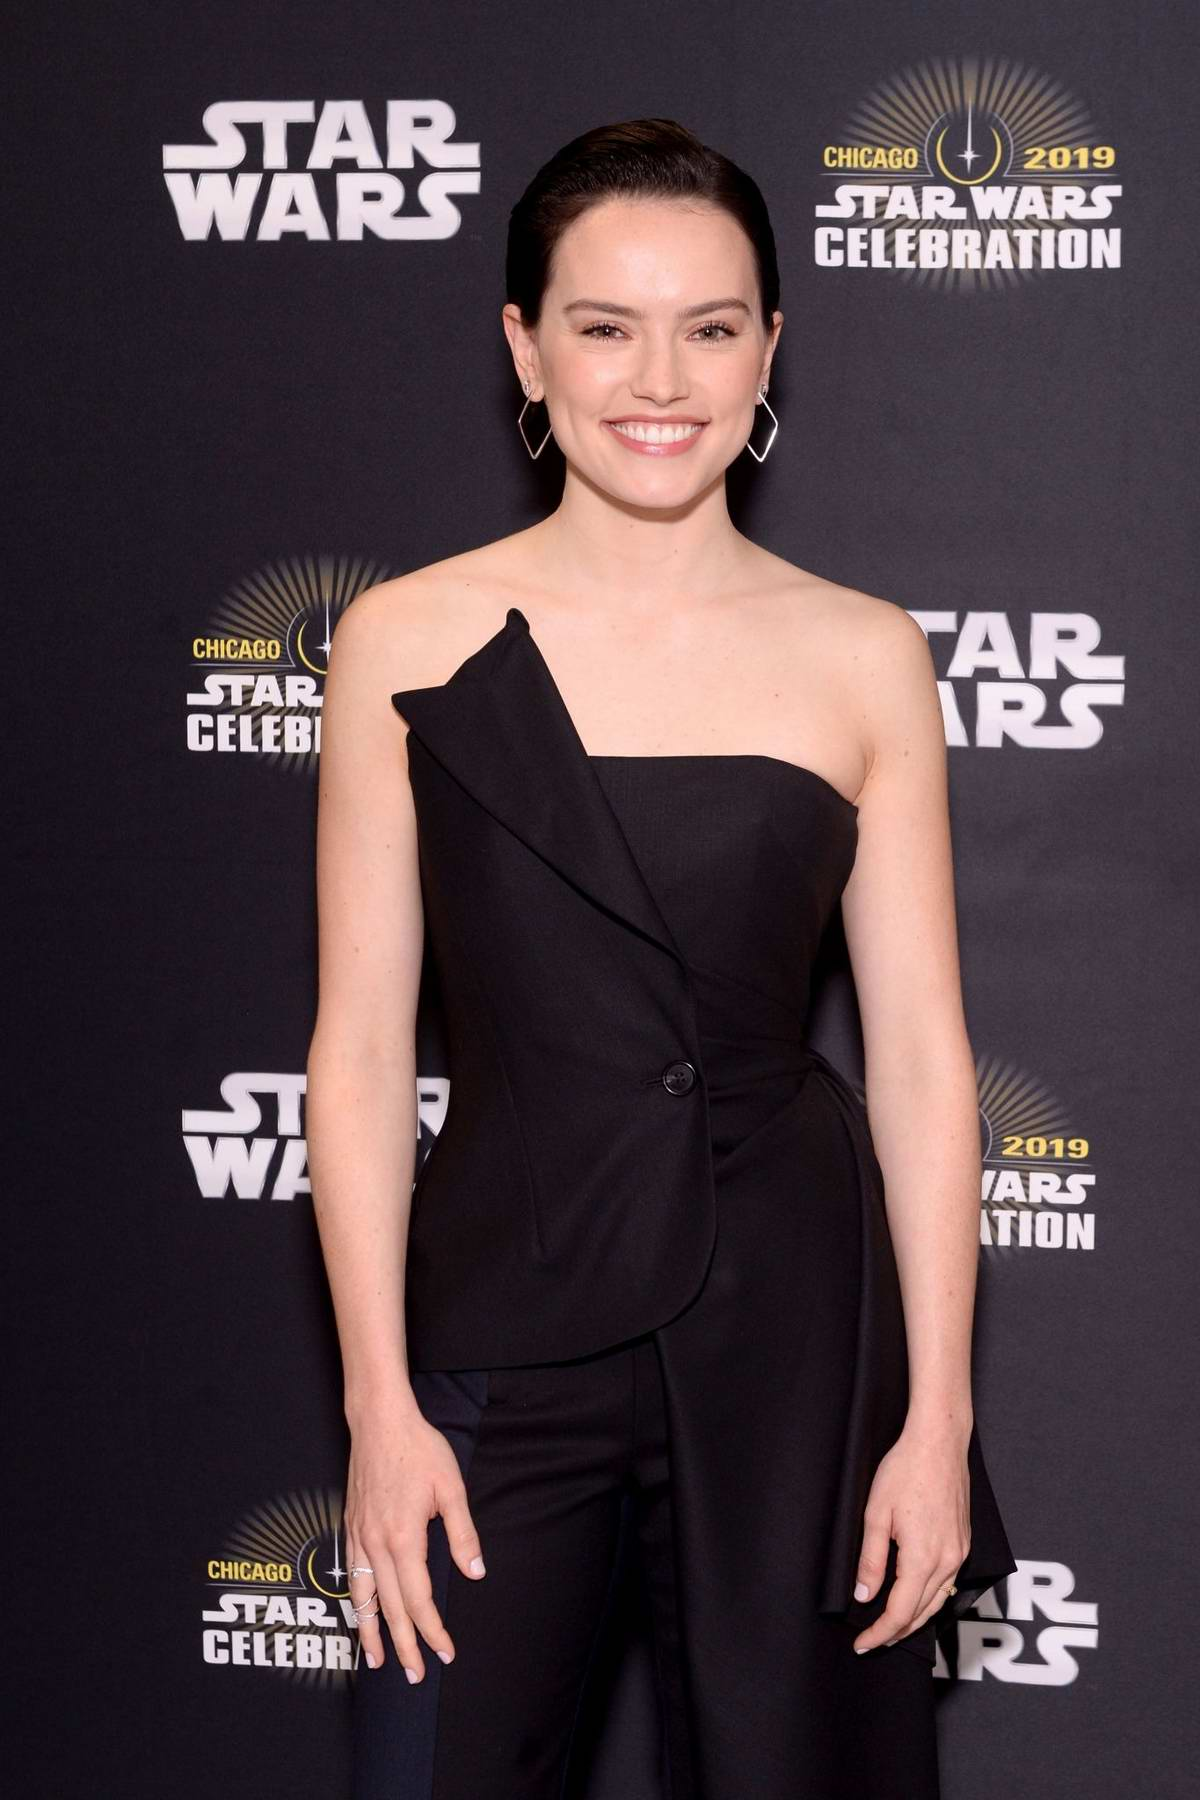 Daisy Ridley attends Star Wars Celebration: 'The Rise of Skywalker' Panel in Chicago